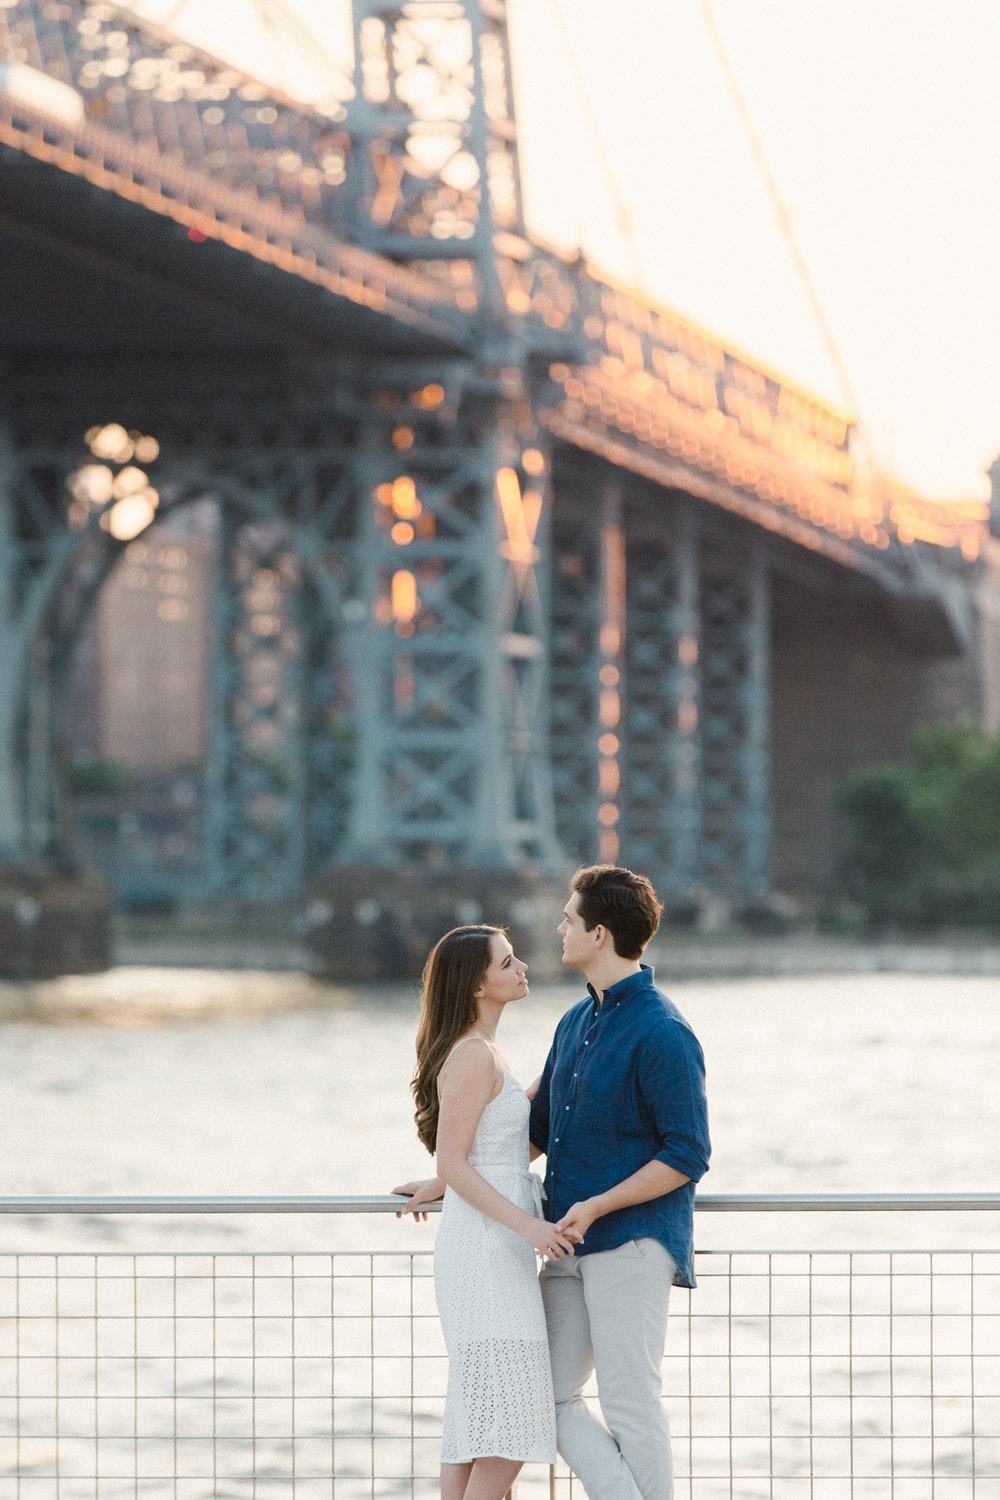 NYC-engagement-Photos-Photographer-Wedding-18.jpg